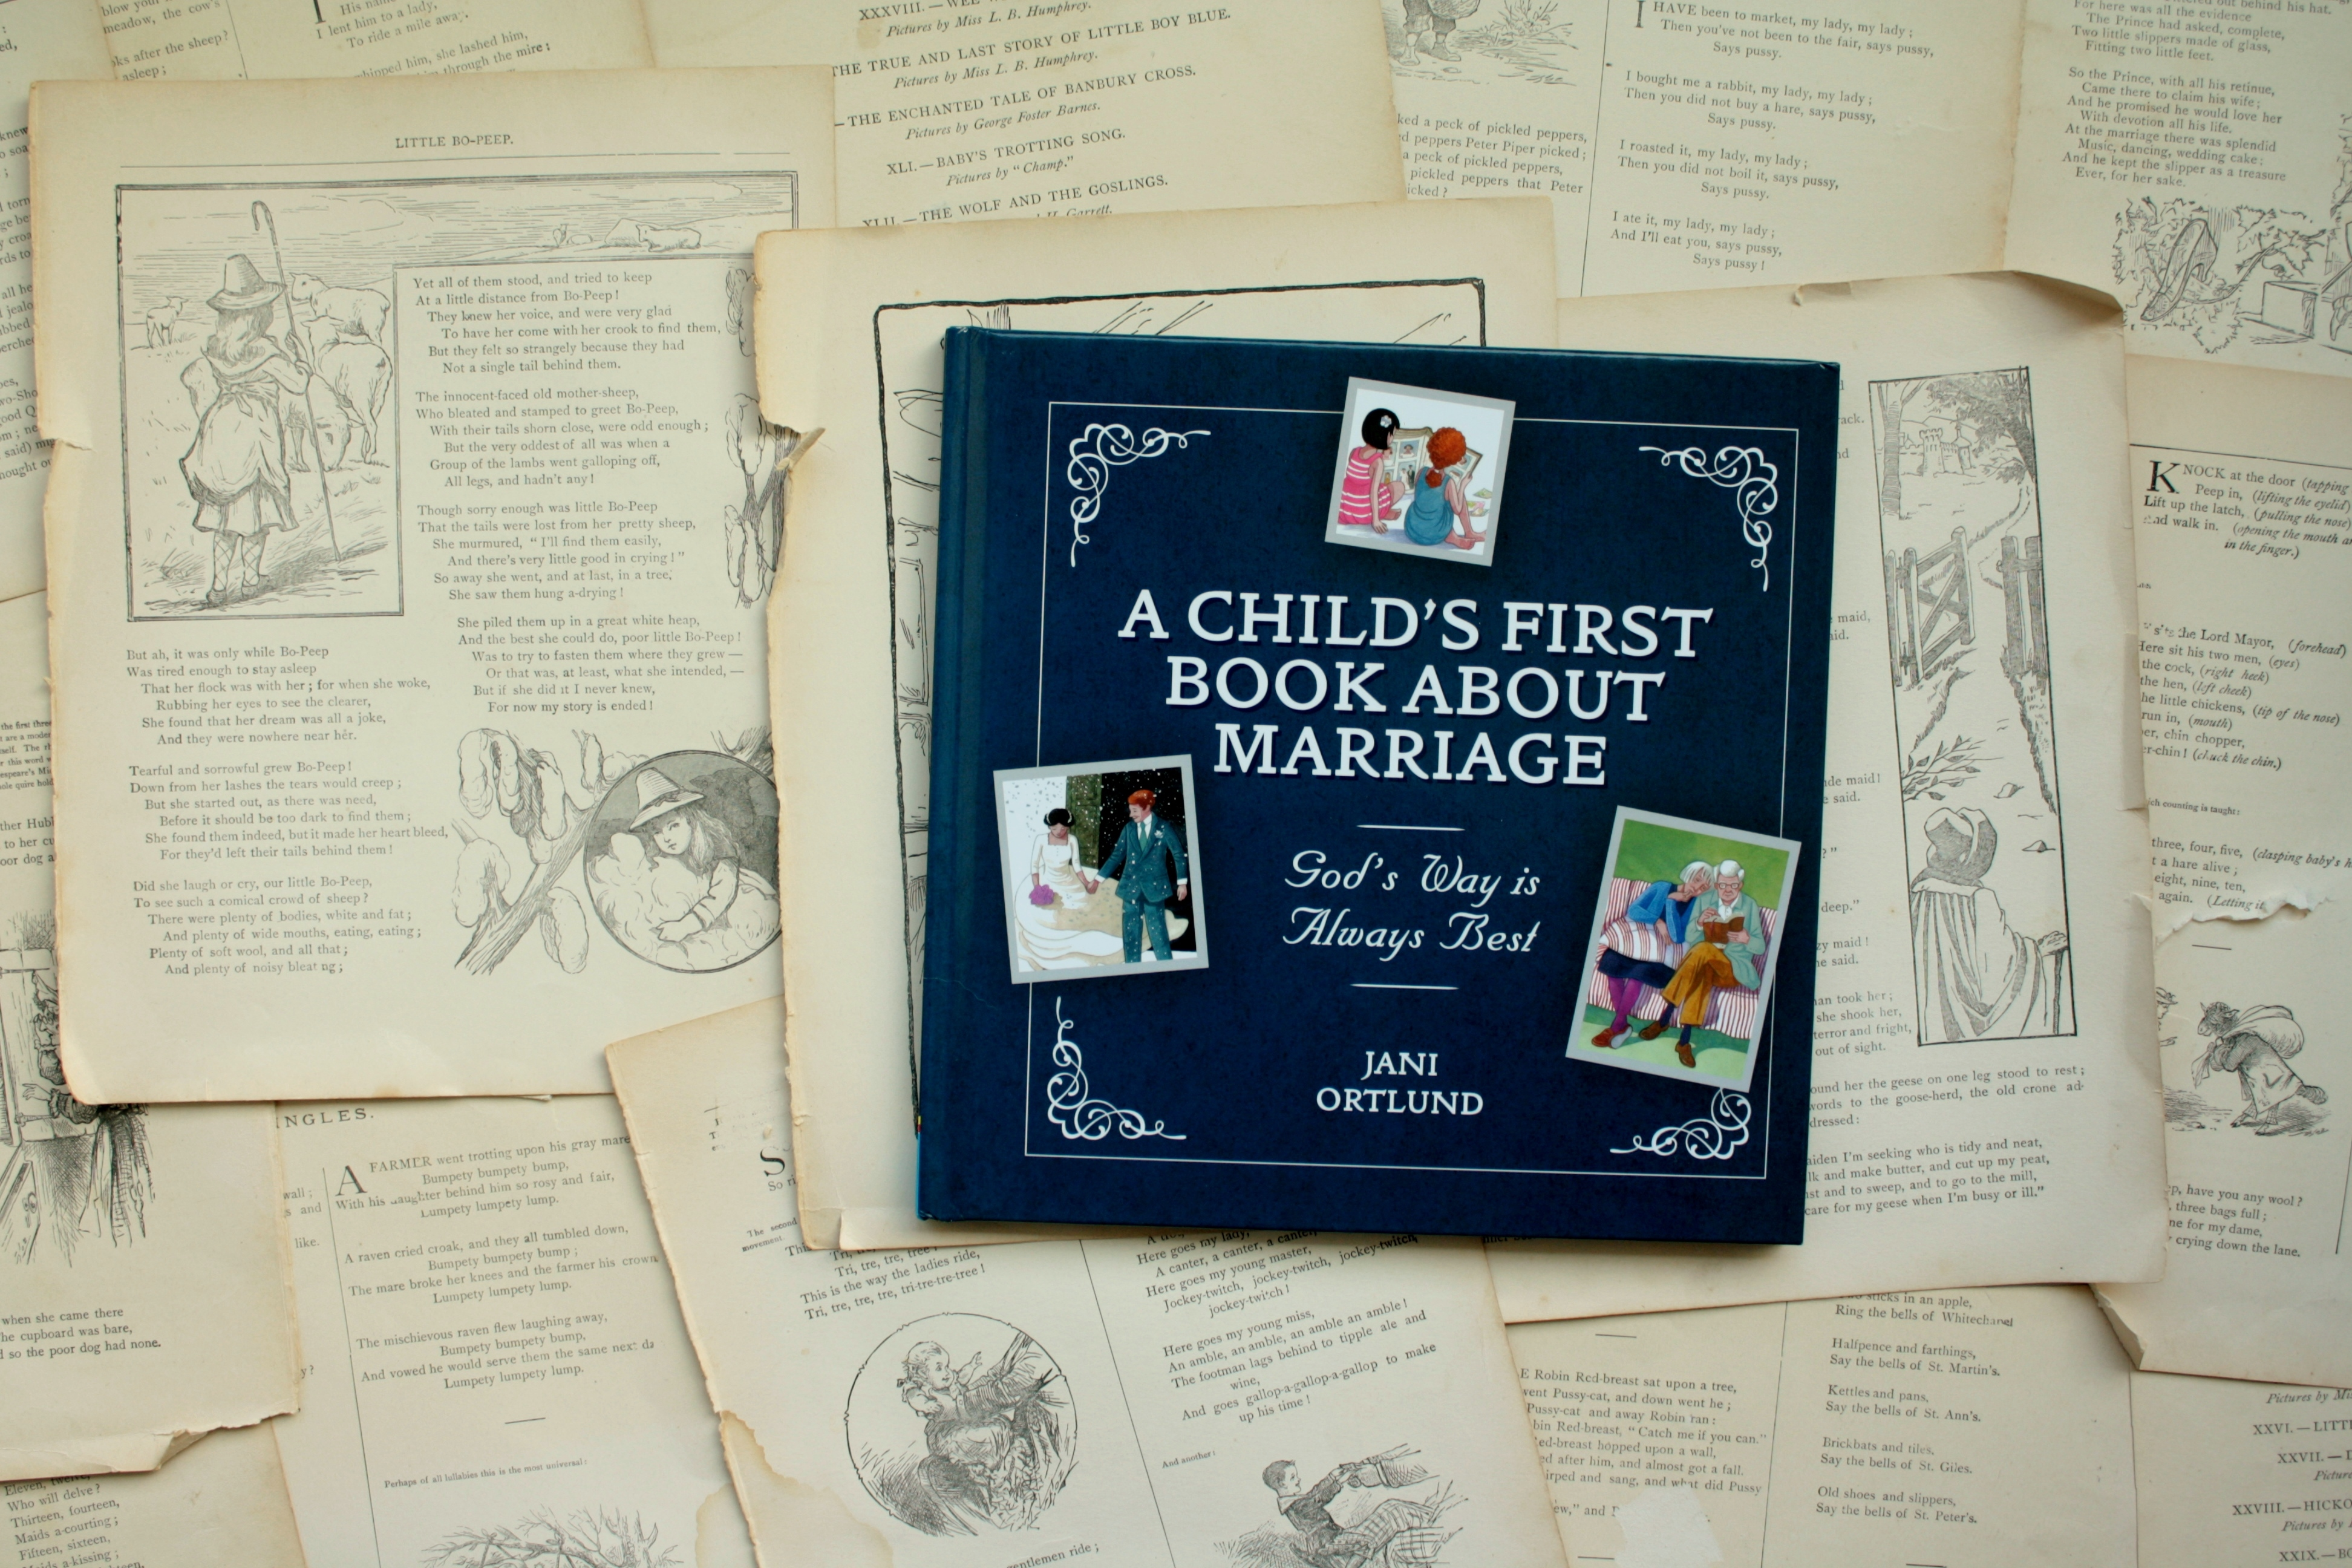 A Child's First Book About Marriage   Jani Ortlund